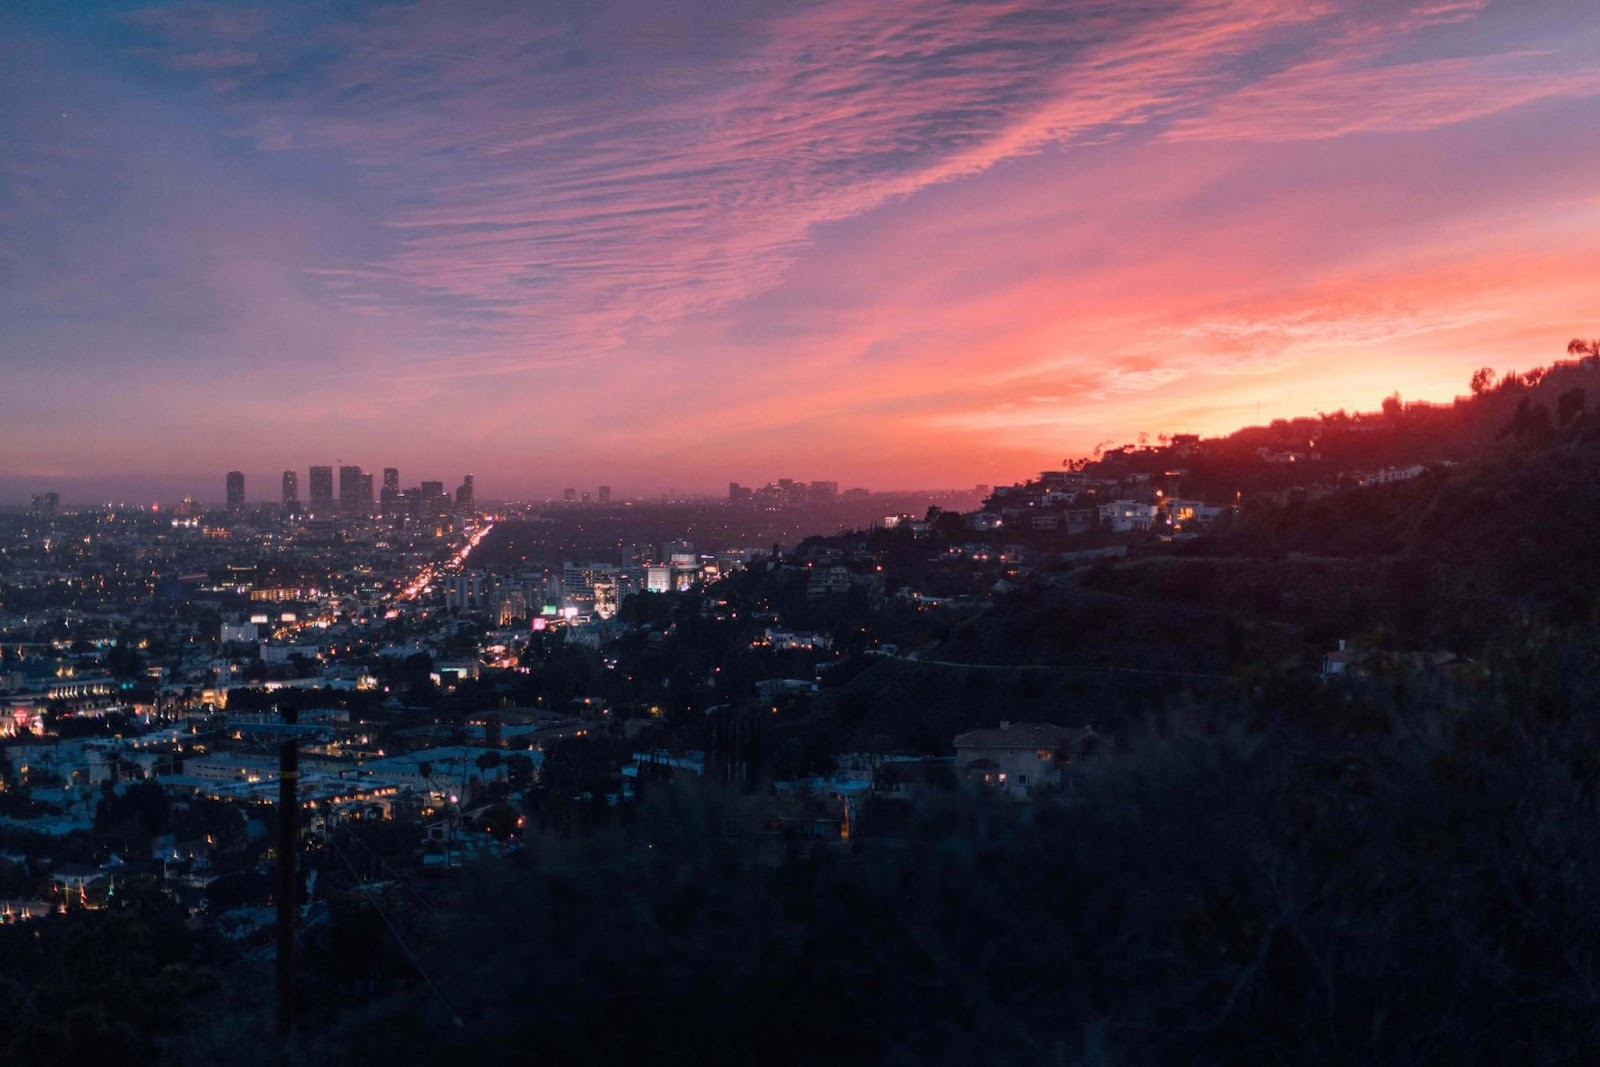 A wide view of Los Angeles at sunset